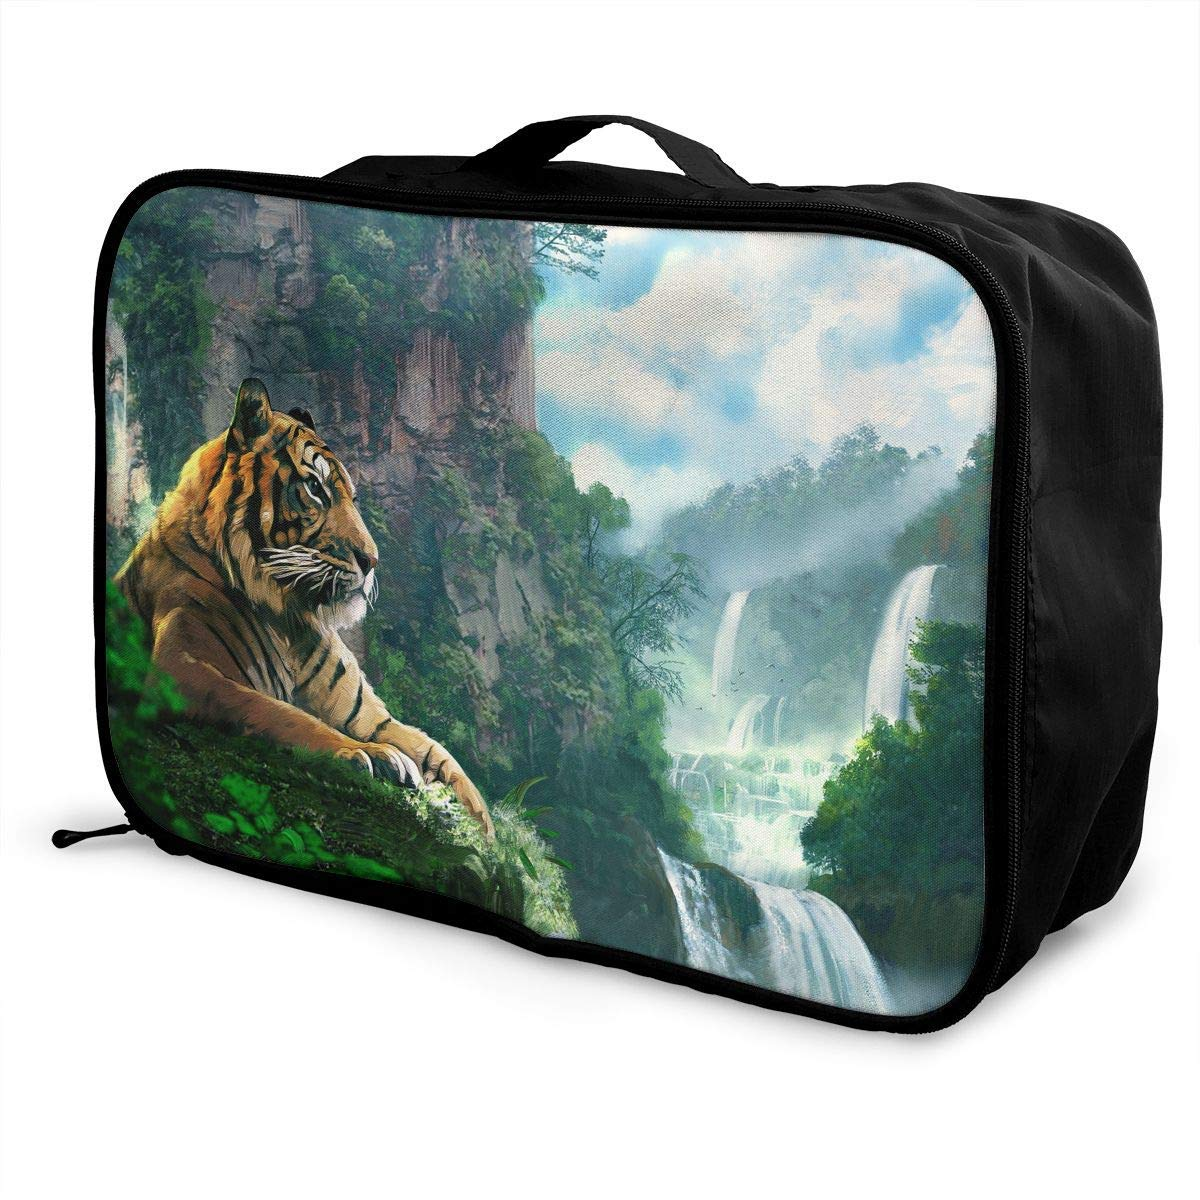 JTRVW Luggage Bags for Travel Lightweight Large Capacity Portable Duffel Bag for Men /& Women Mountain Tiger Painting Travel Duffel Bag Backpack